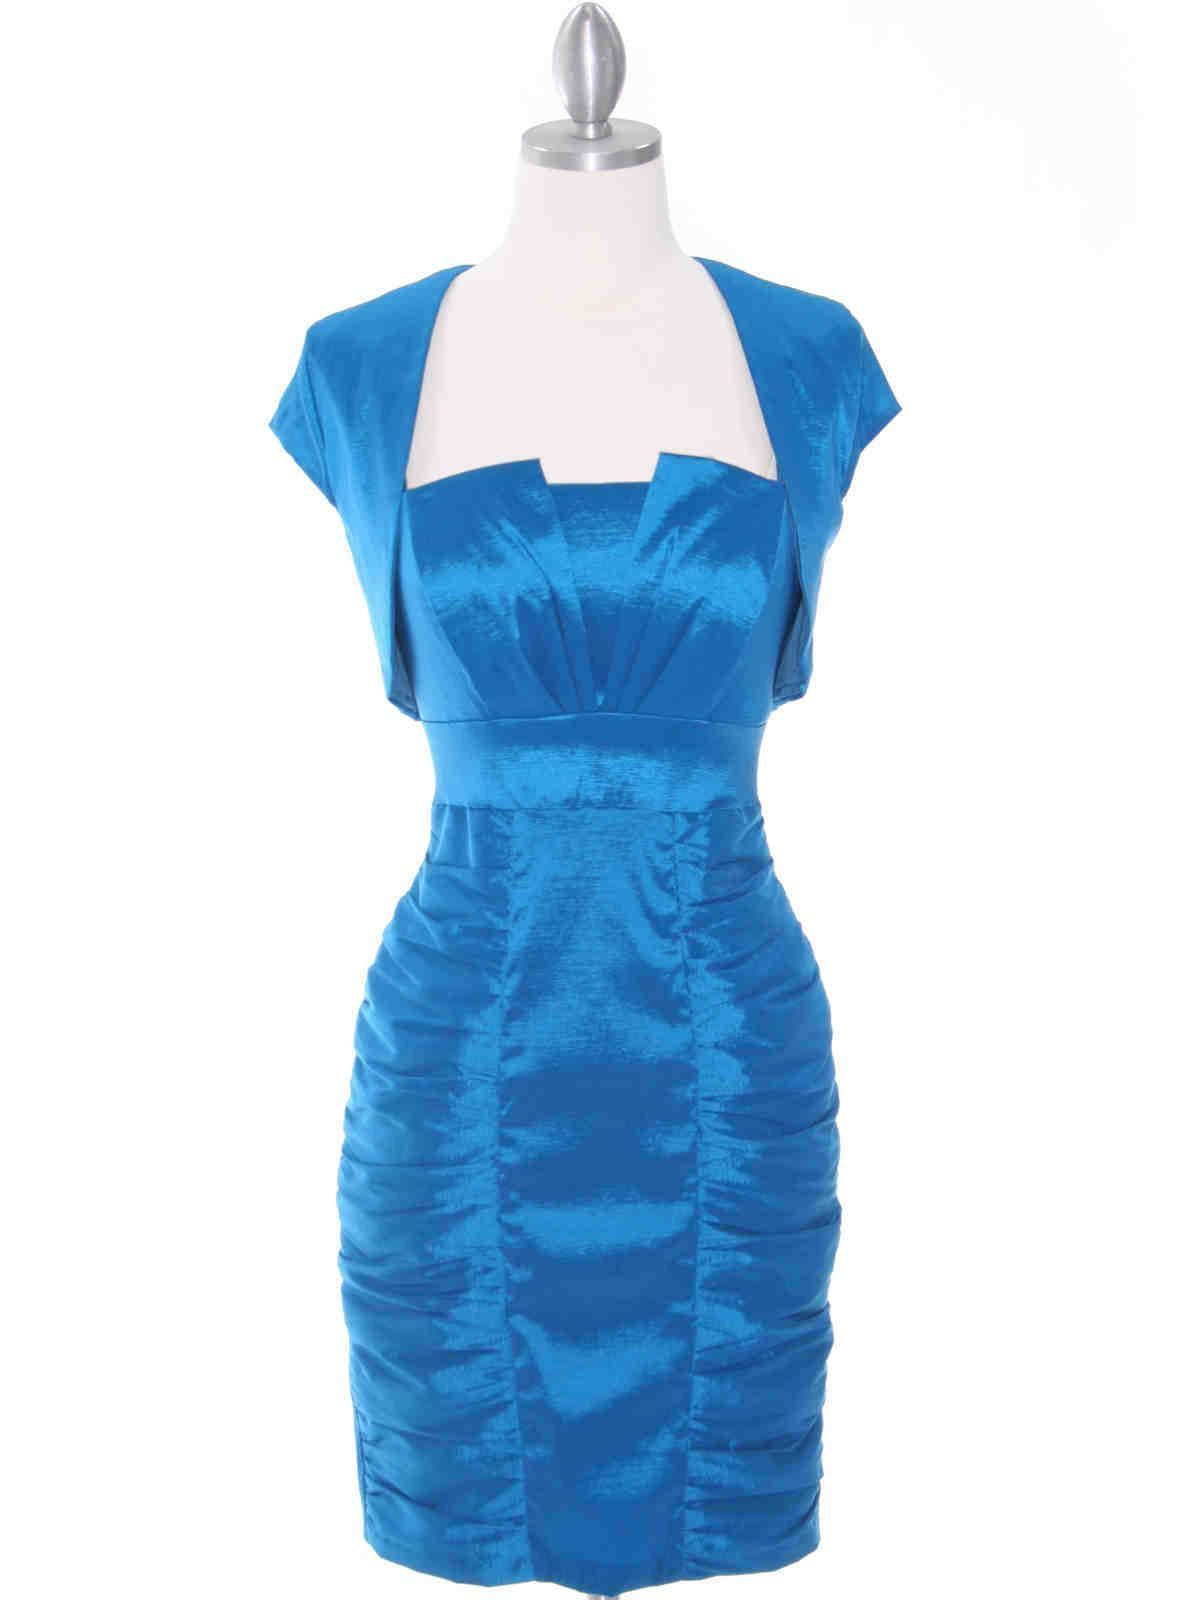 Short fitted cocktail dress with bolero jacket formal dress